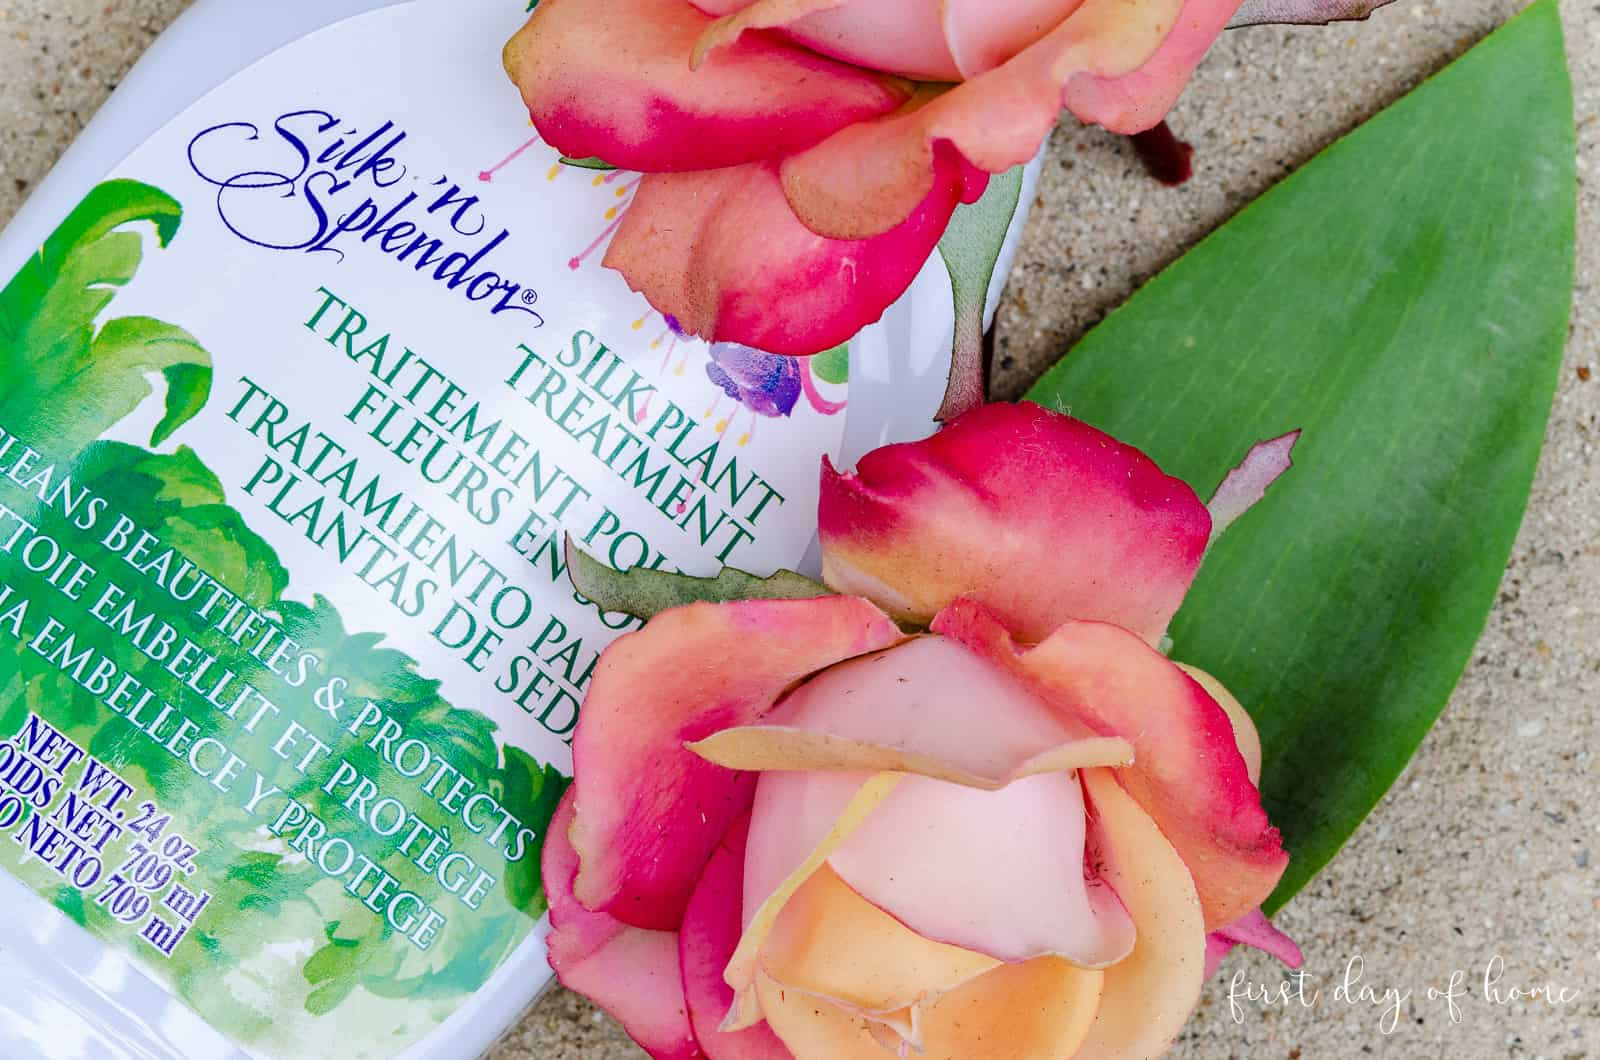 Silk flower cleaning spray with faux roses that have gathered dust